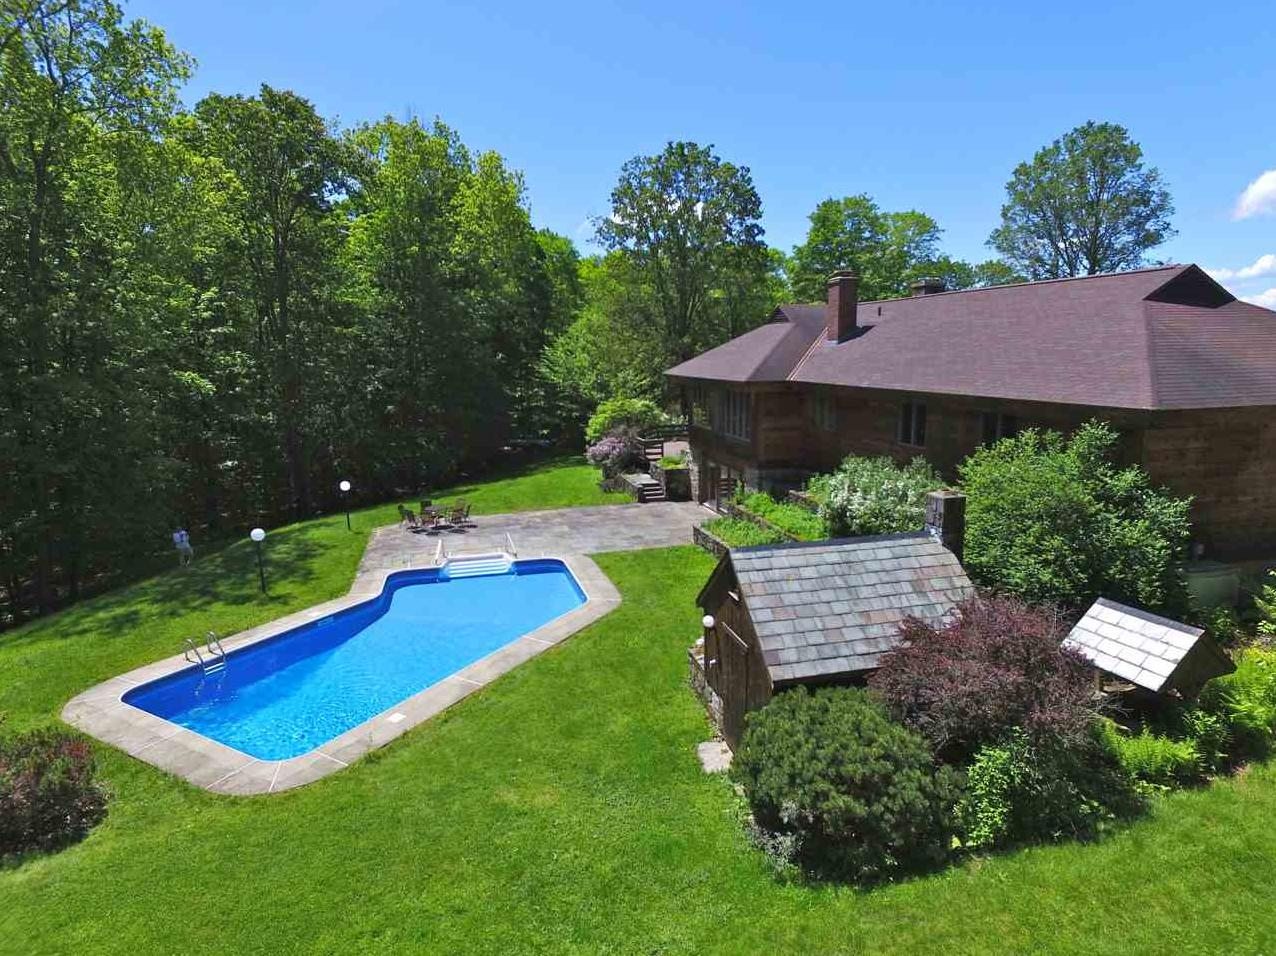 Photo of 250 Mill Pond Court Weathersfield VT 05030-0550